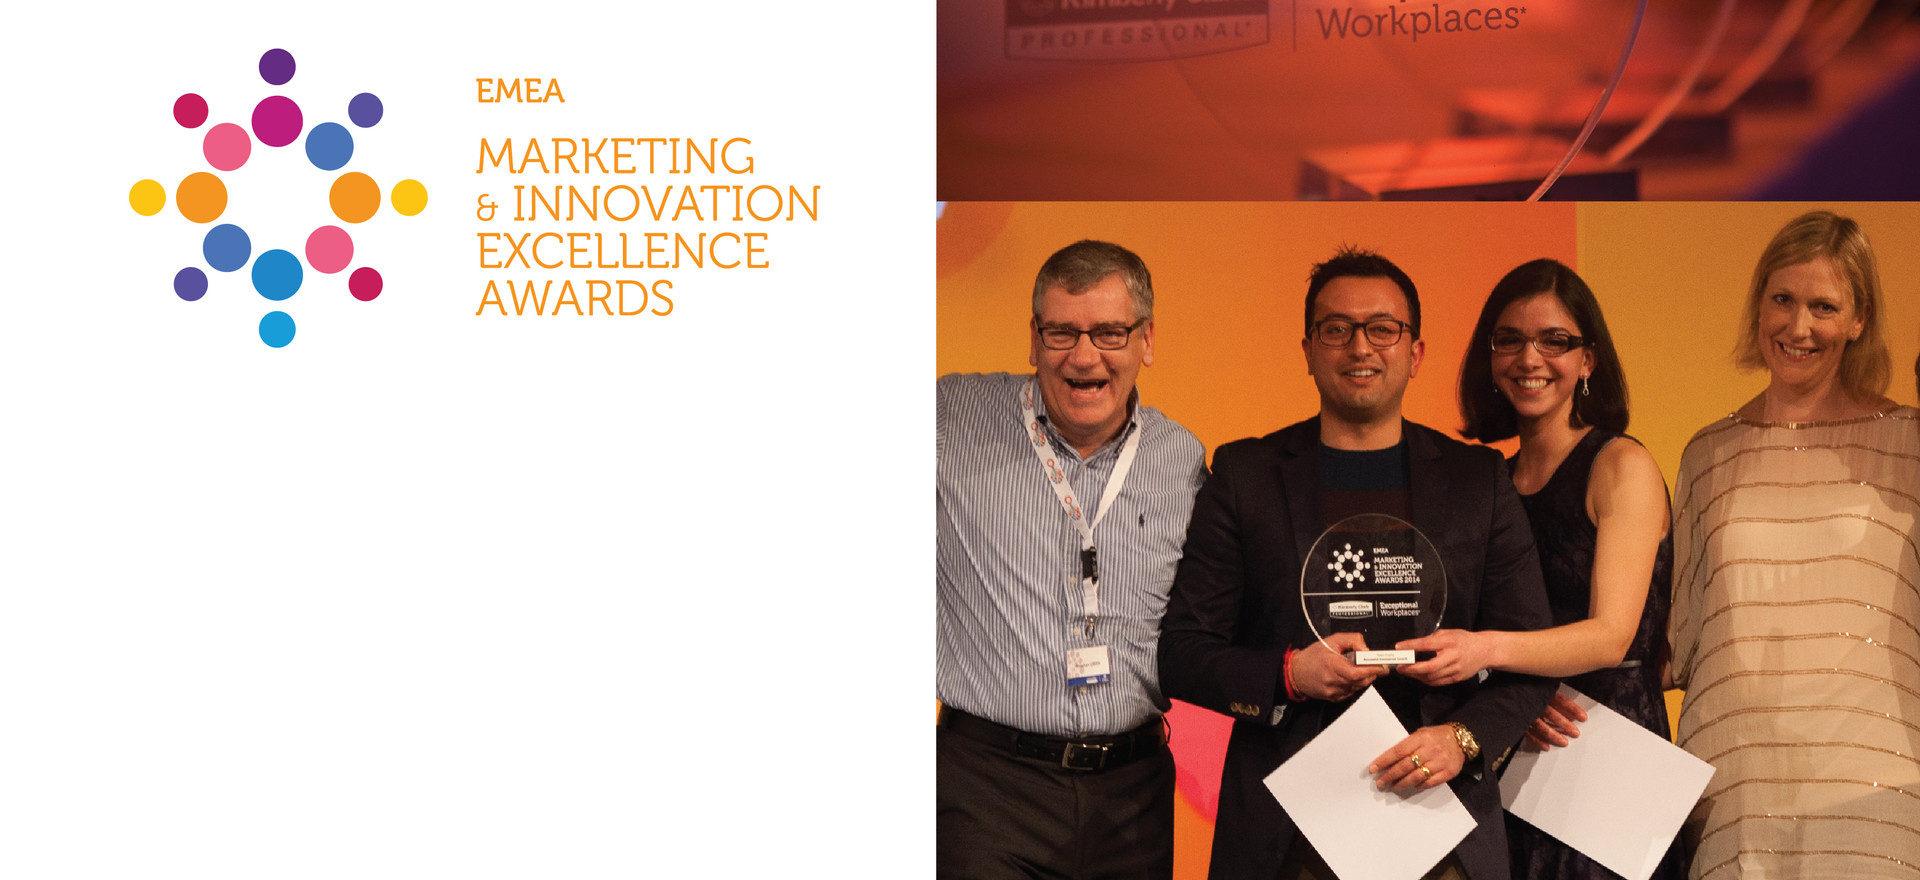 Premiazioni – Design del logo e del premio dei Marketing Awards | Awards  Logo design and Marketing Awards